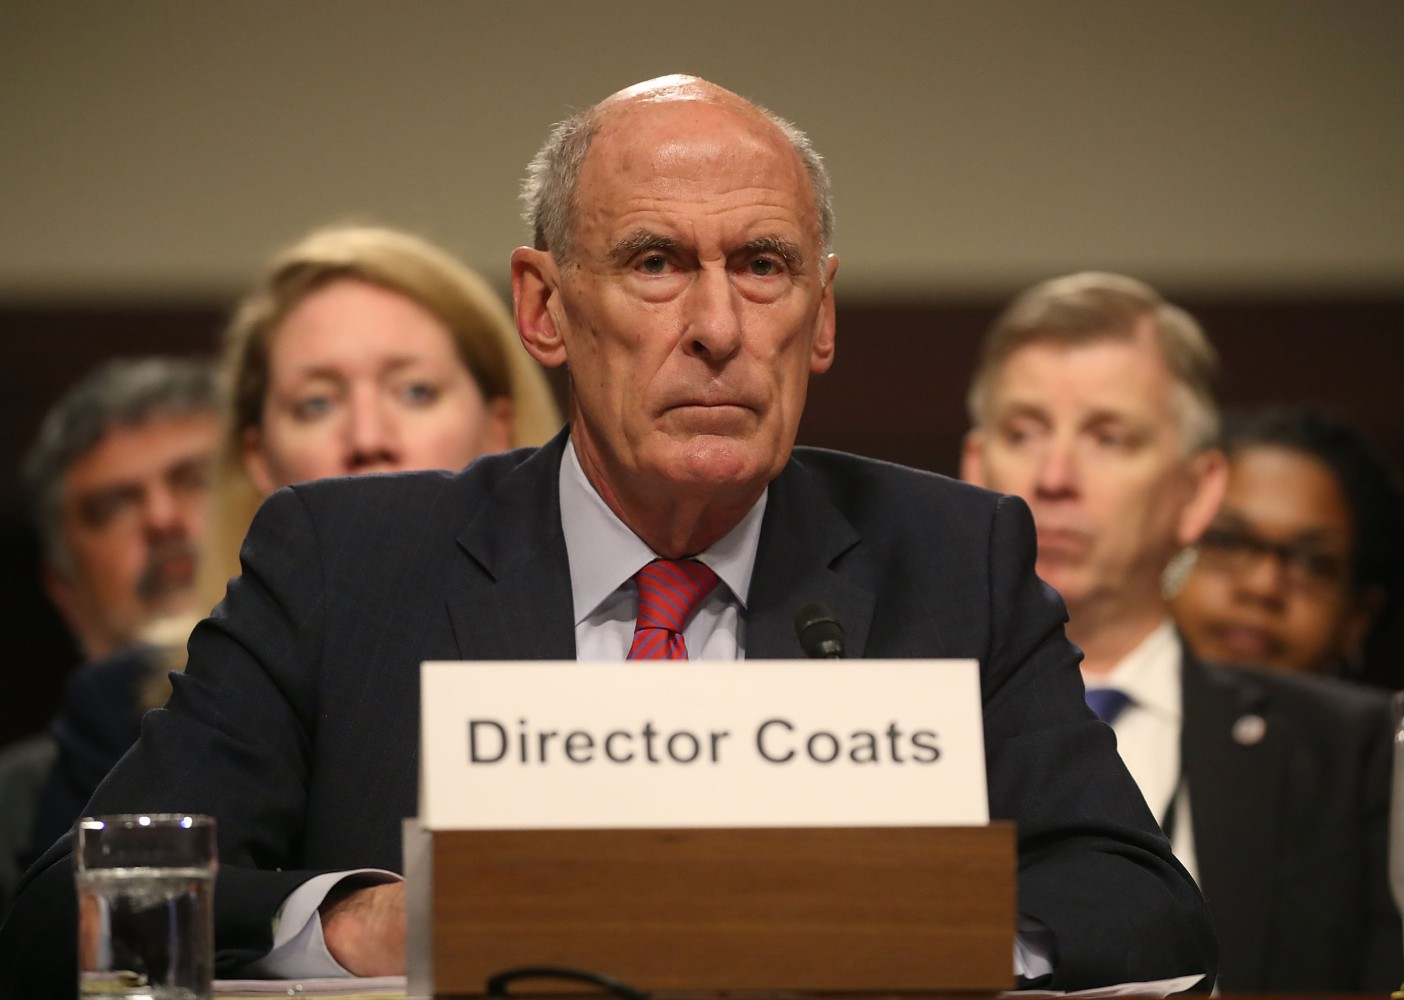 Image result for PHOTOS OF DAN COATS ROGERS